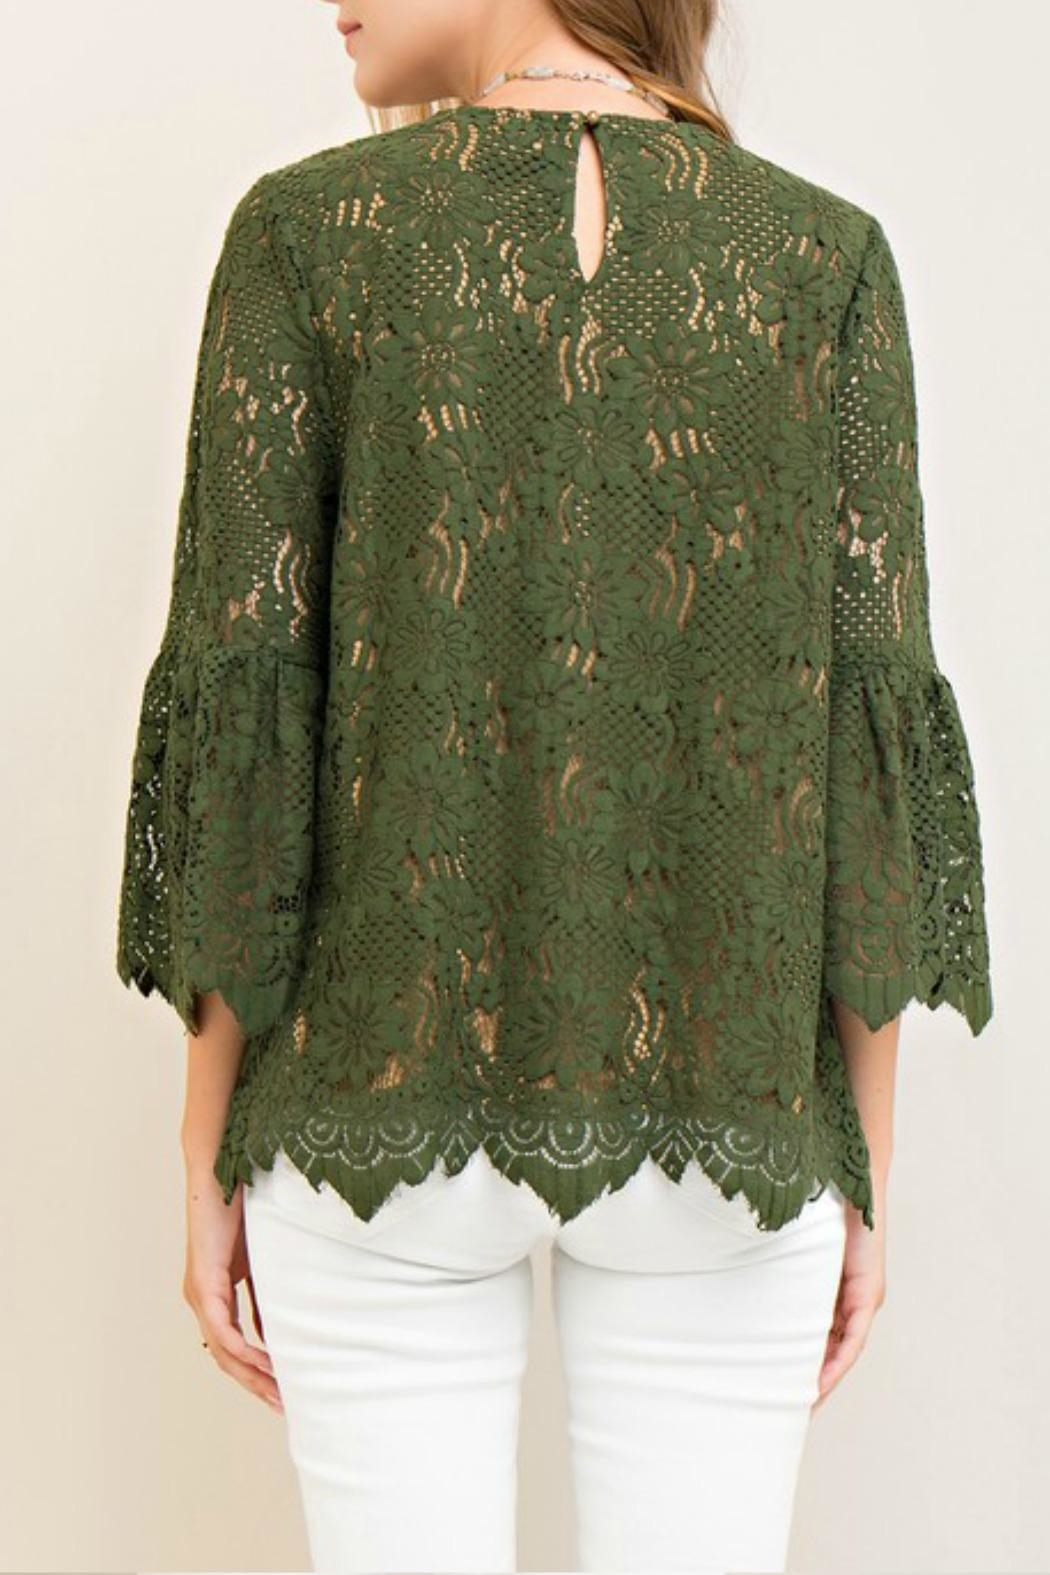 Entro Lace Green Top - Front Full Image